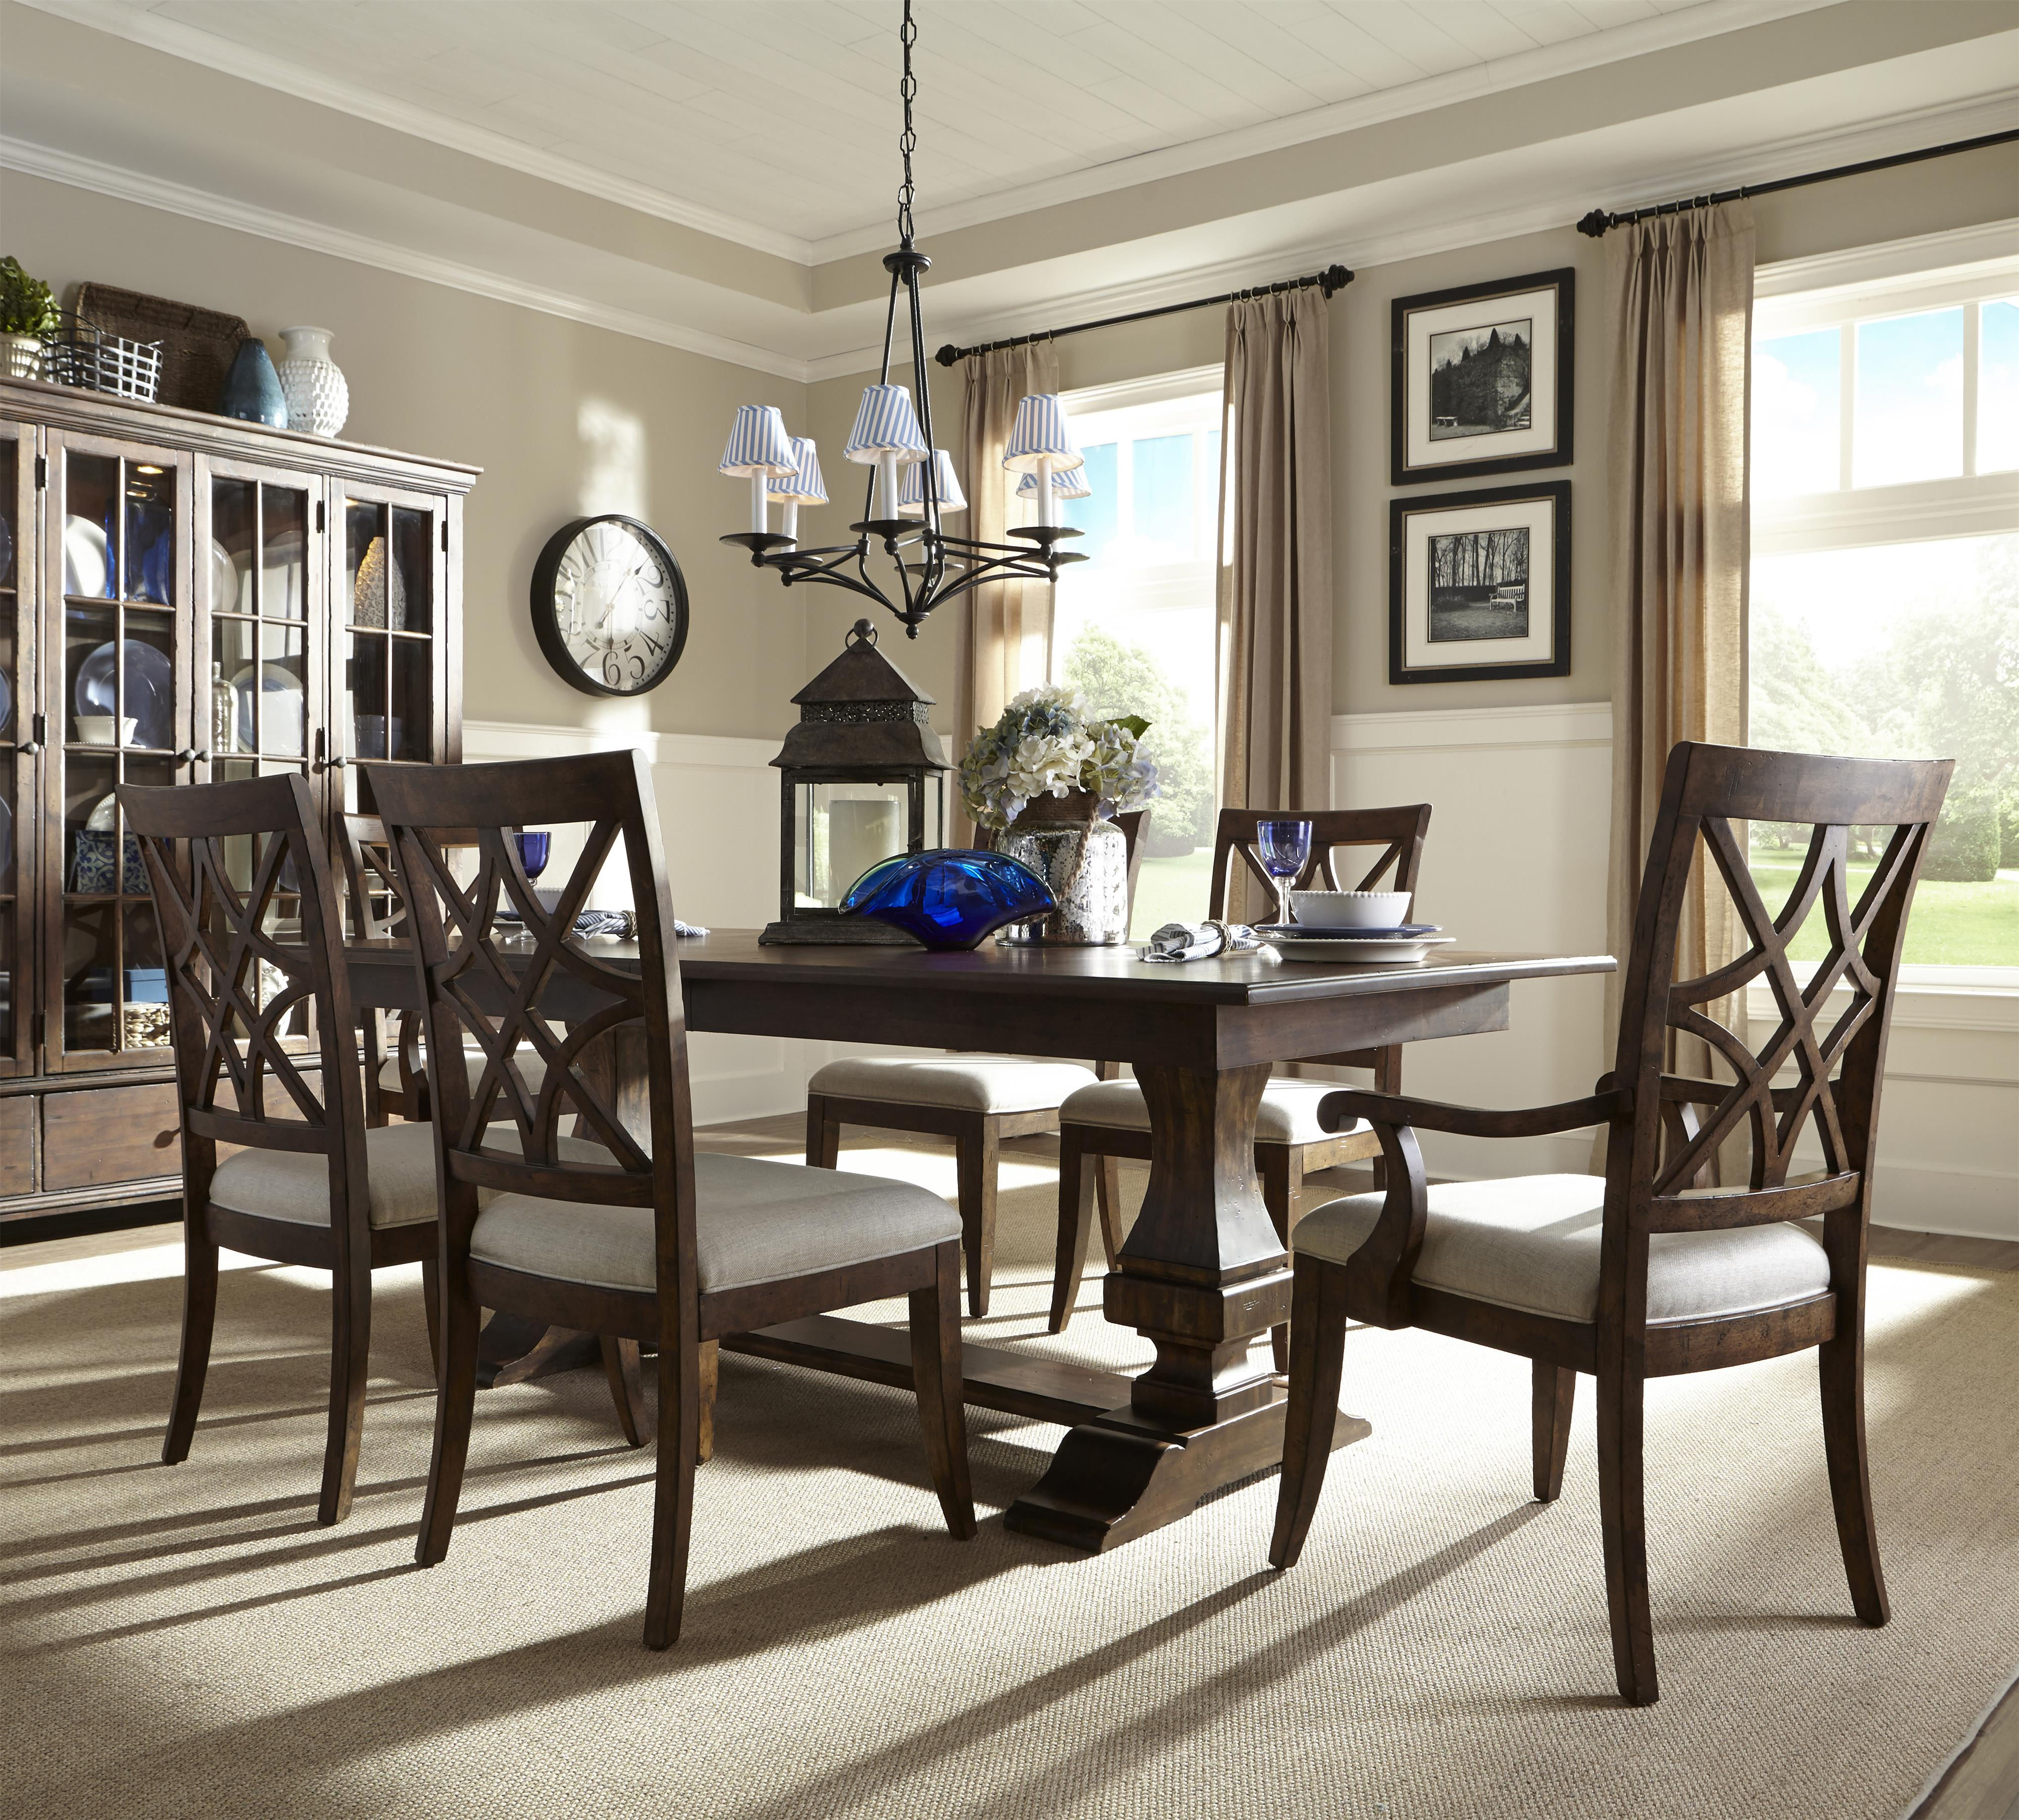 Trisha Yearwood Home Trestle Table and Chairs Set by Trisha Yearwood Home Collection by Klaussner at Ruby Gordon Home